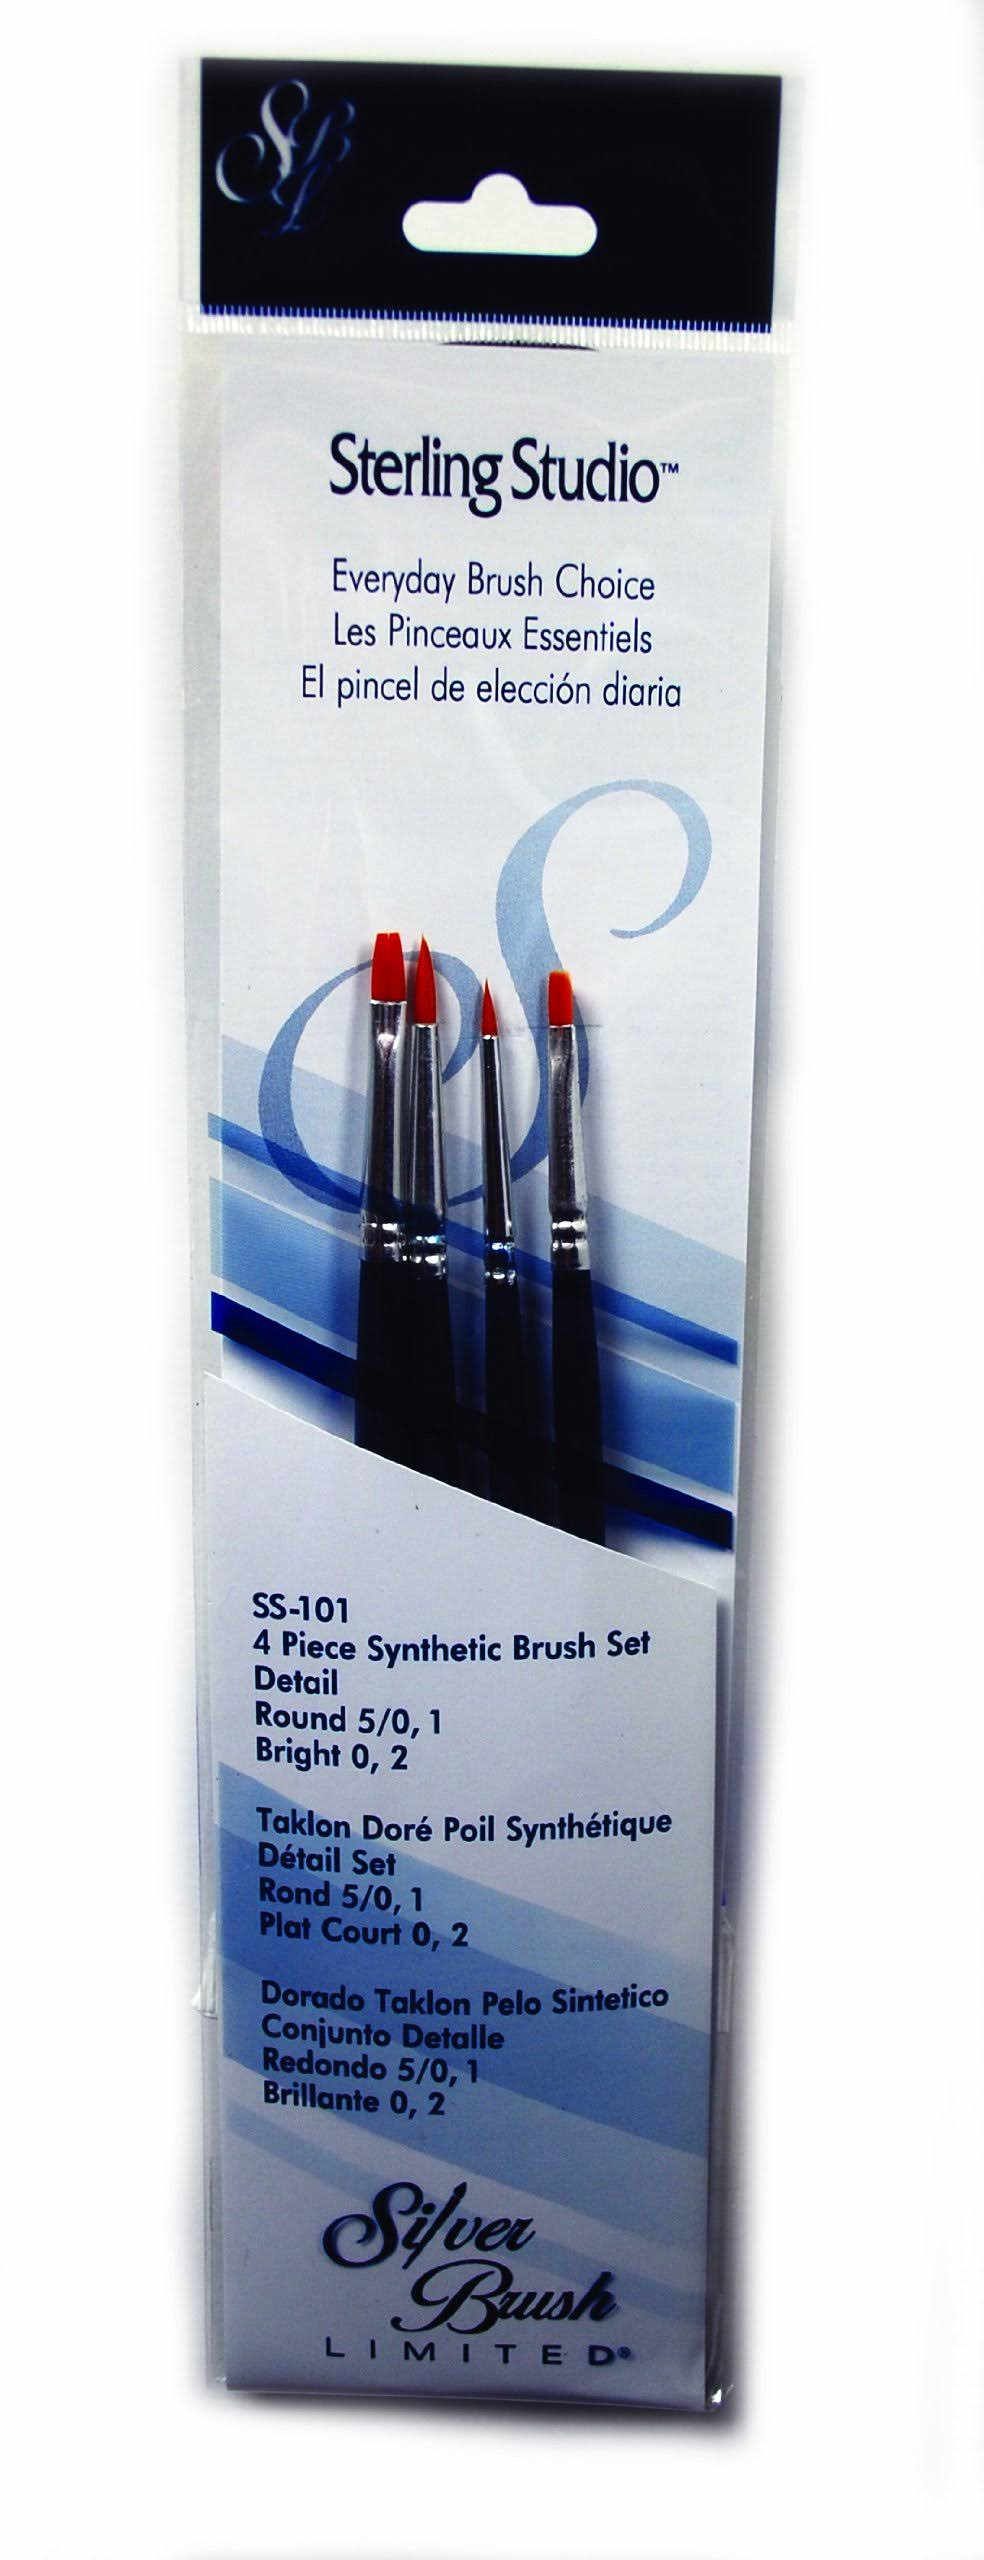 Silver Brush Limited SS101 Sterling Studio Round/Bright Brush Set 4pcs